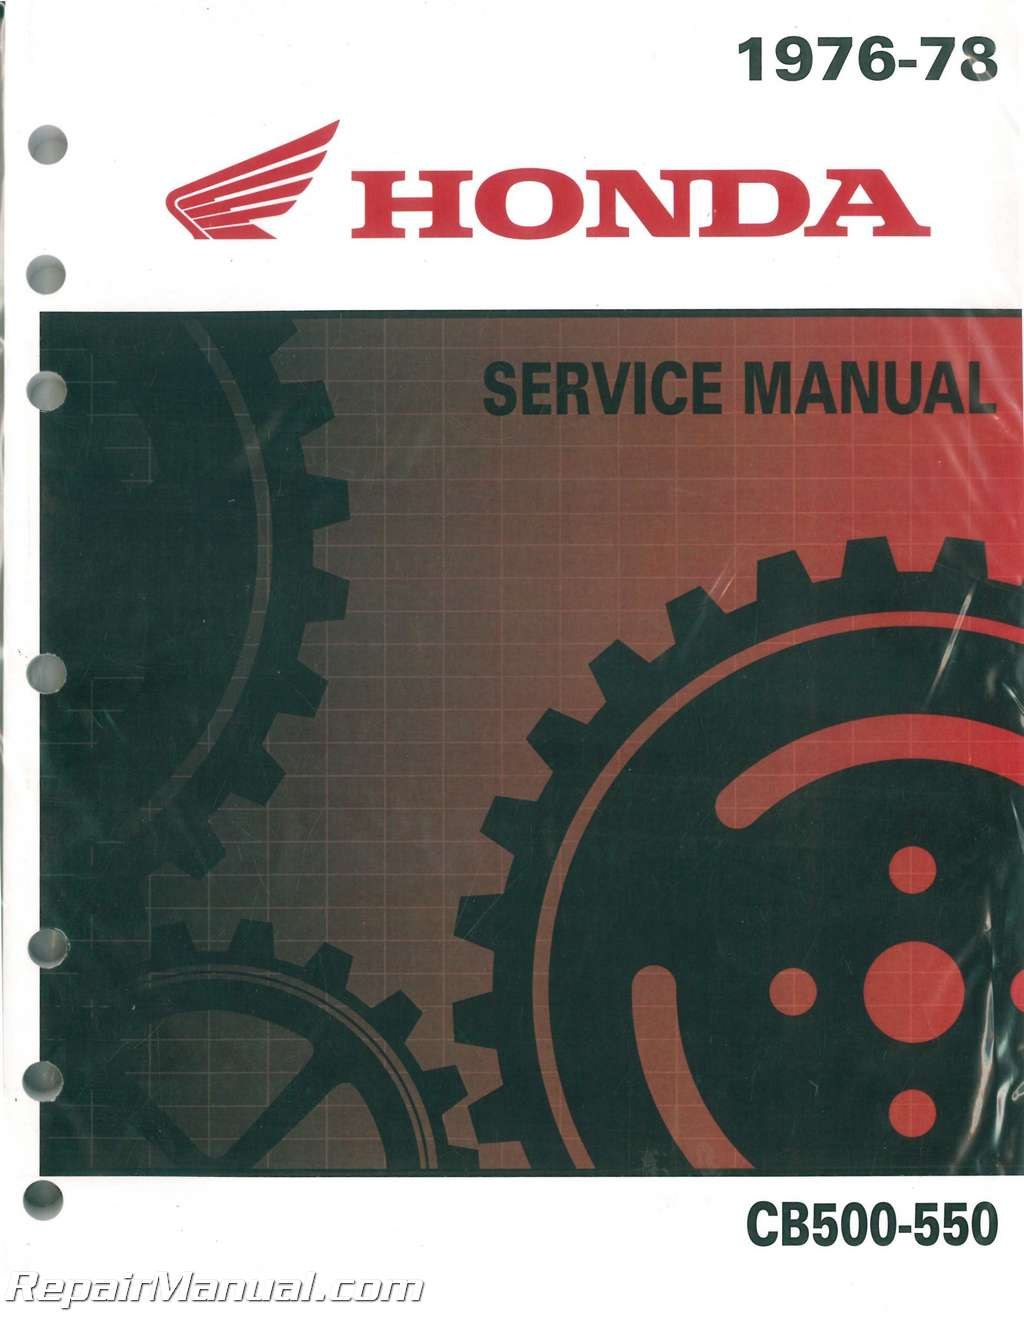 1976 1978 honda cb500 cb550 motorcycle service manual rh repairmanual com honda cb550 service manual download CB550 Cafe